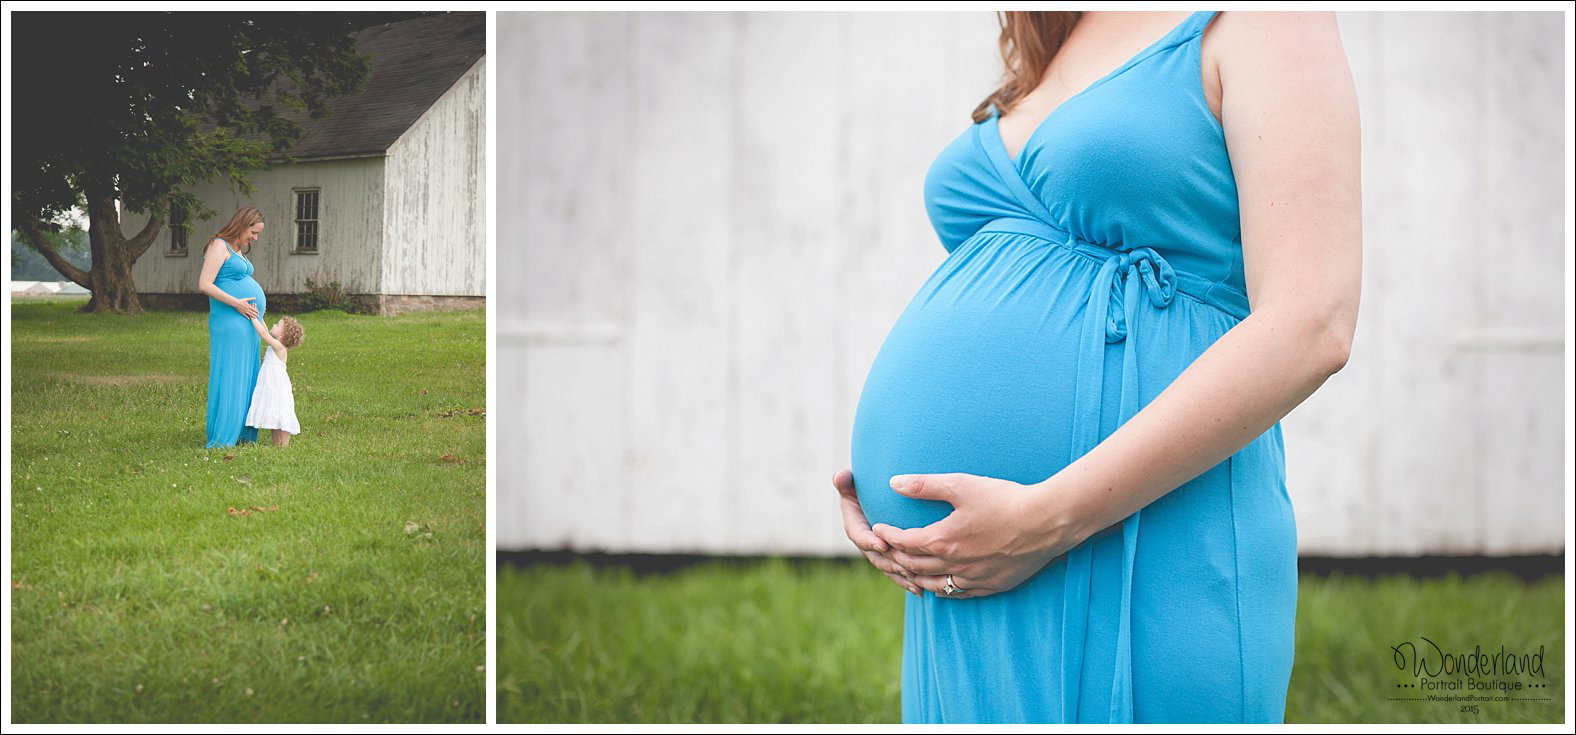 Farm Country Maternity ideas Yardley Bucks County PA Maternity and Newborn Photographer | WonderlandPortrait.com